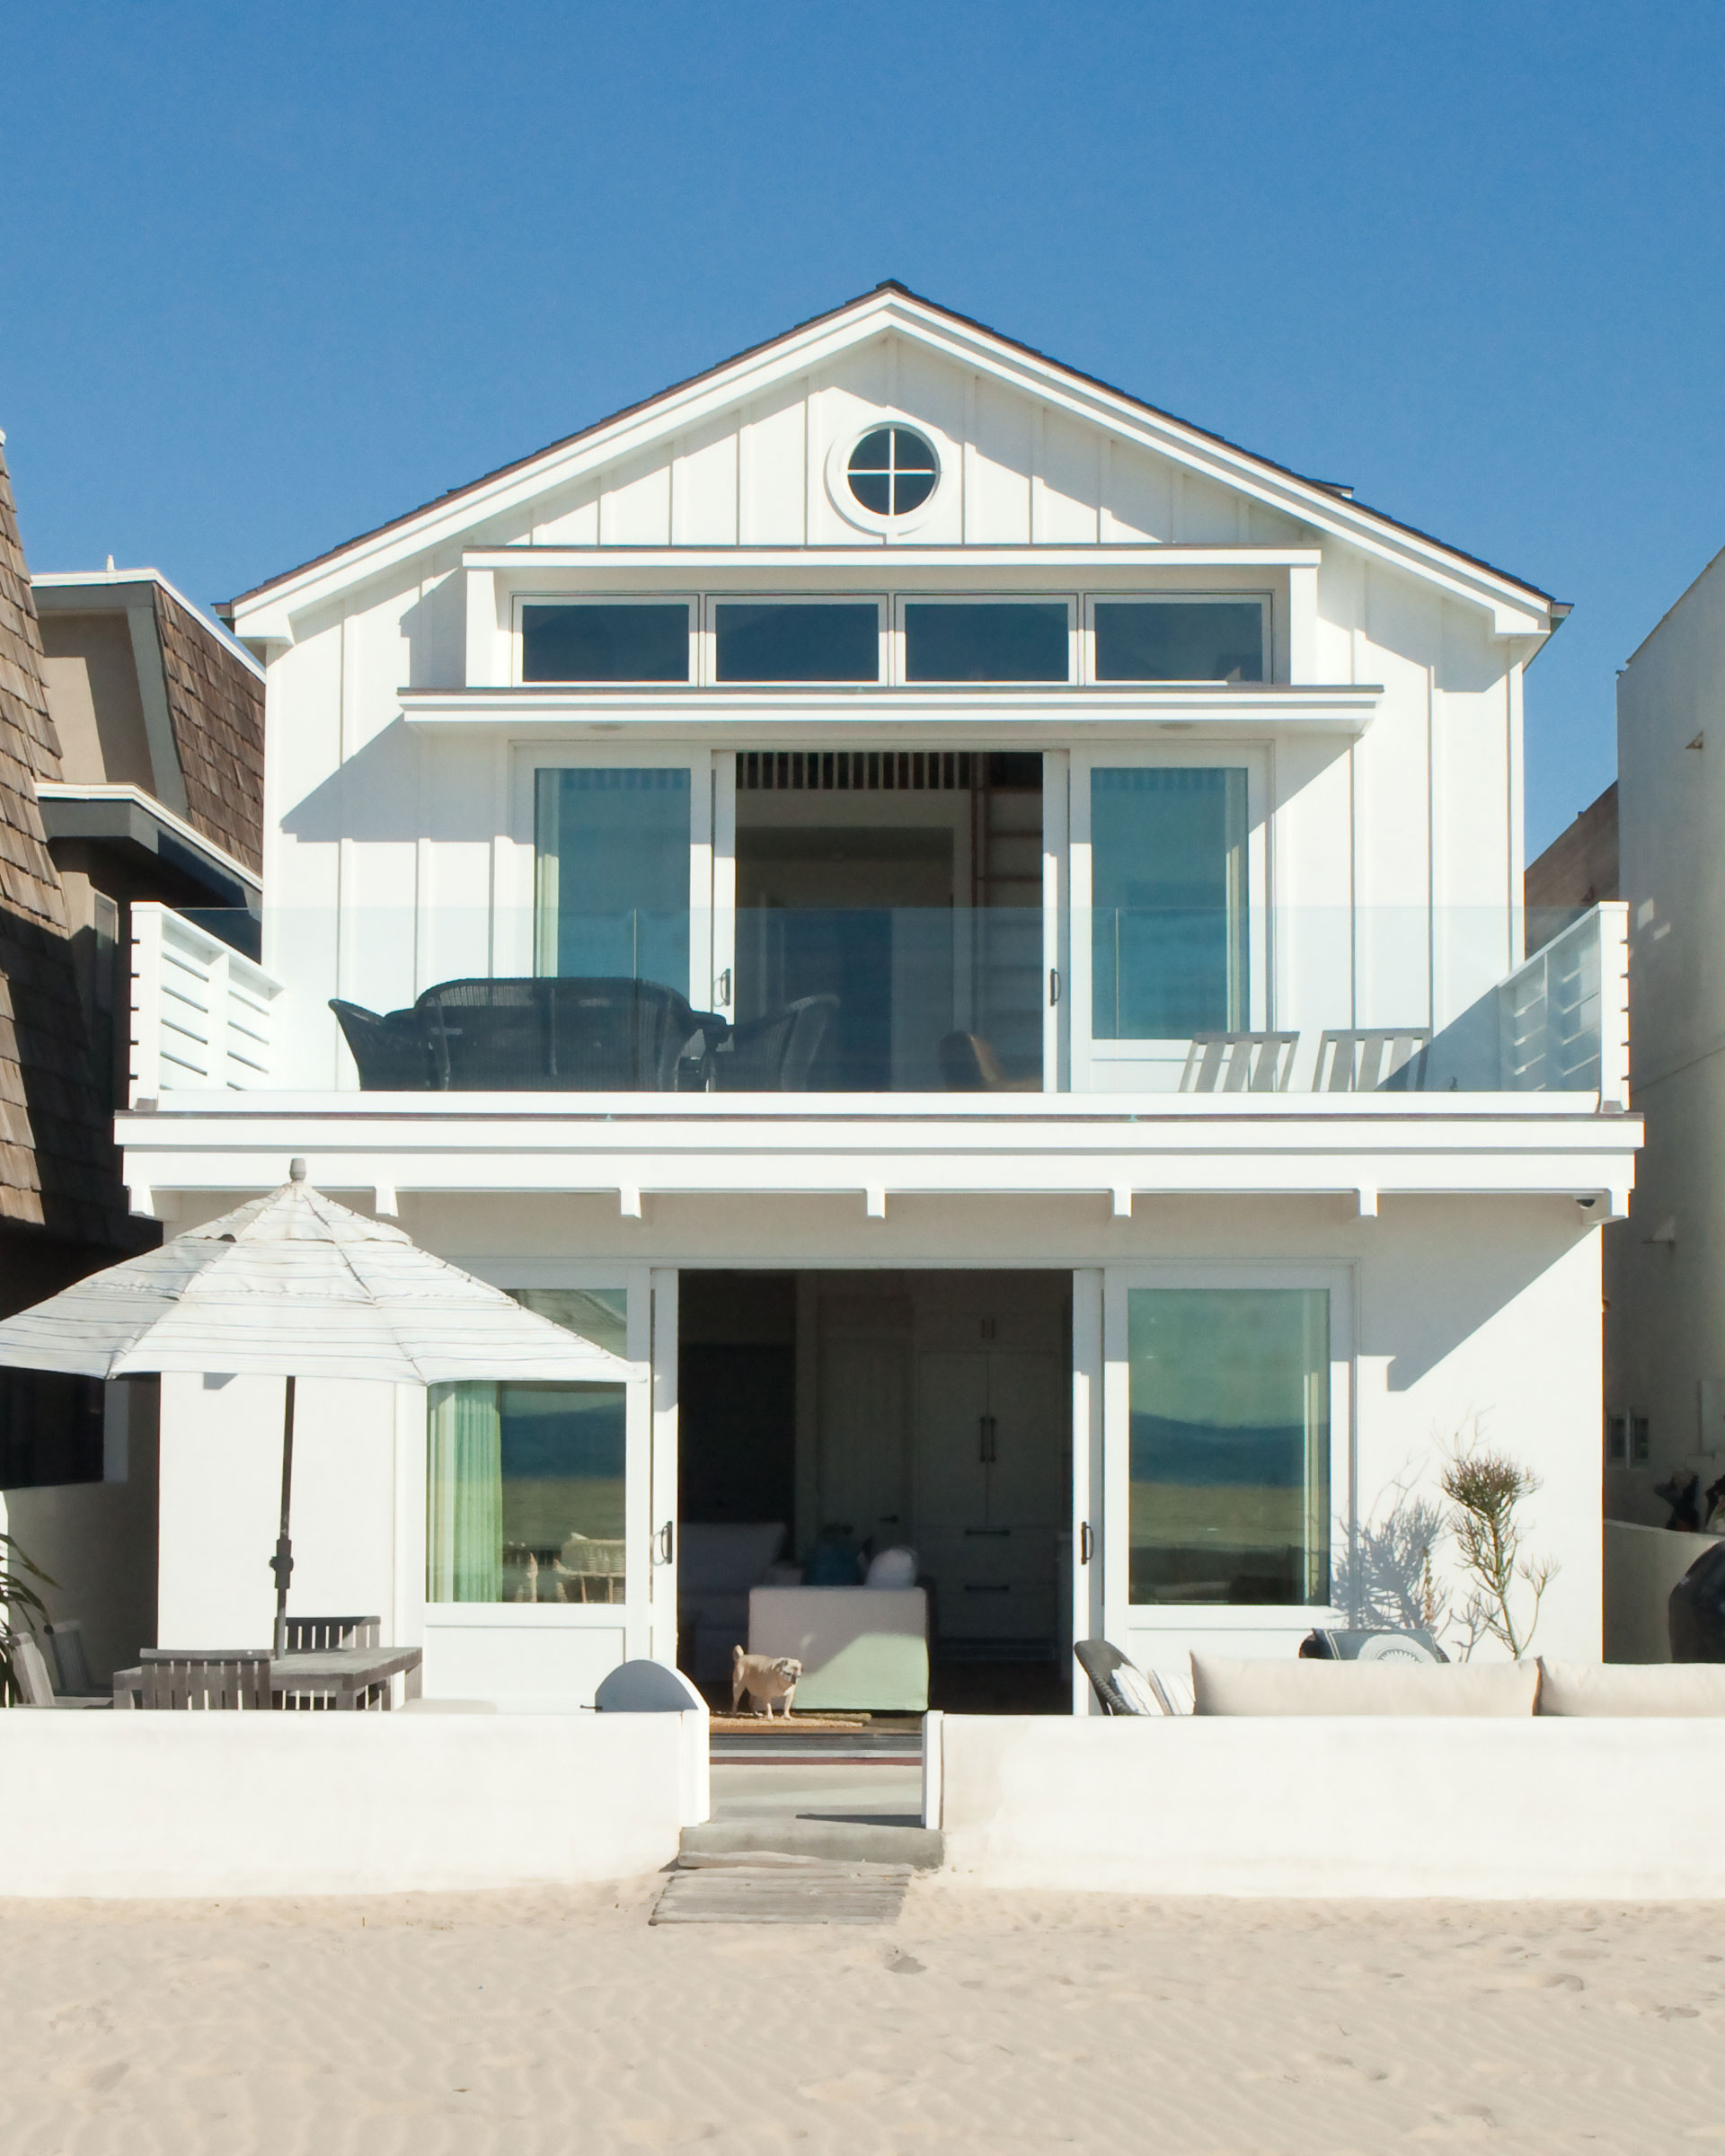 8 striking beach houses on the california coast for Minimalist house california